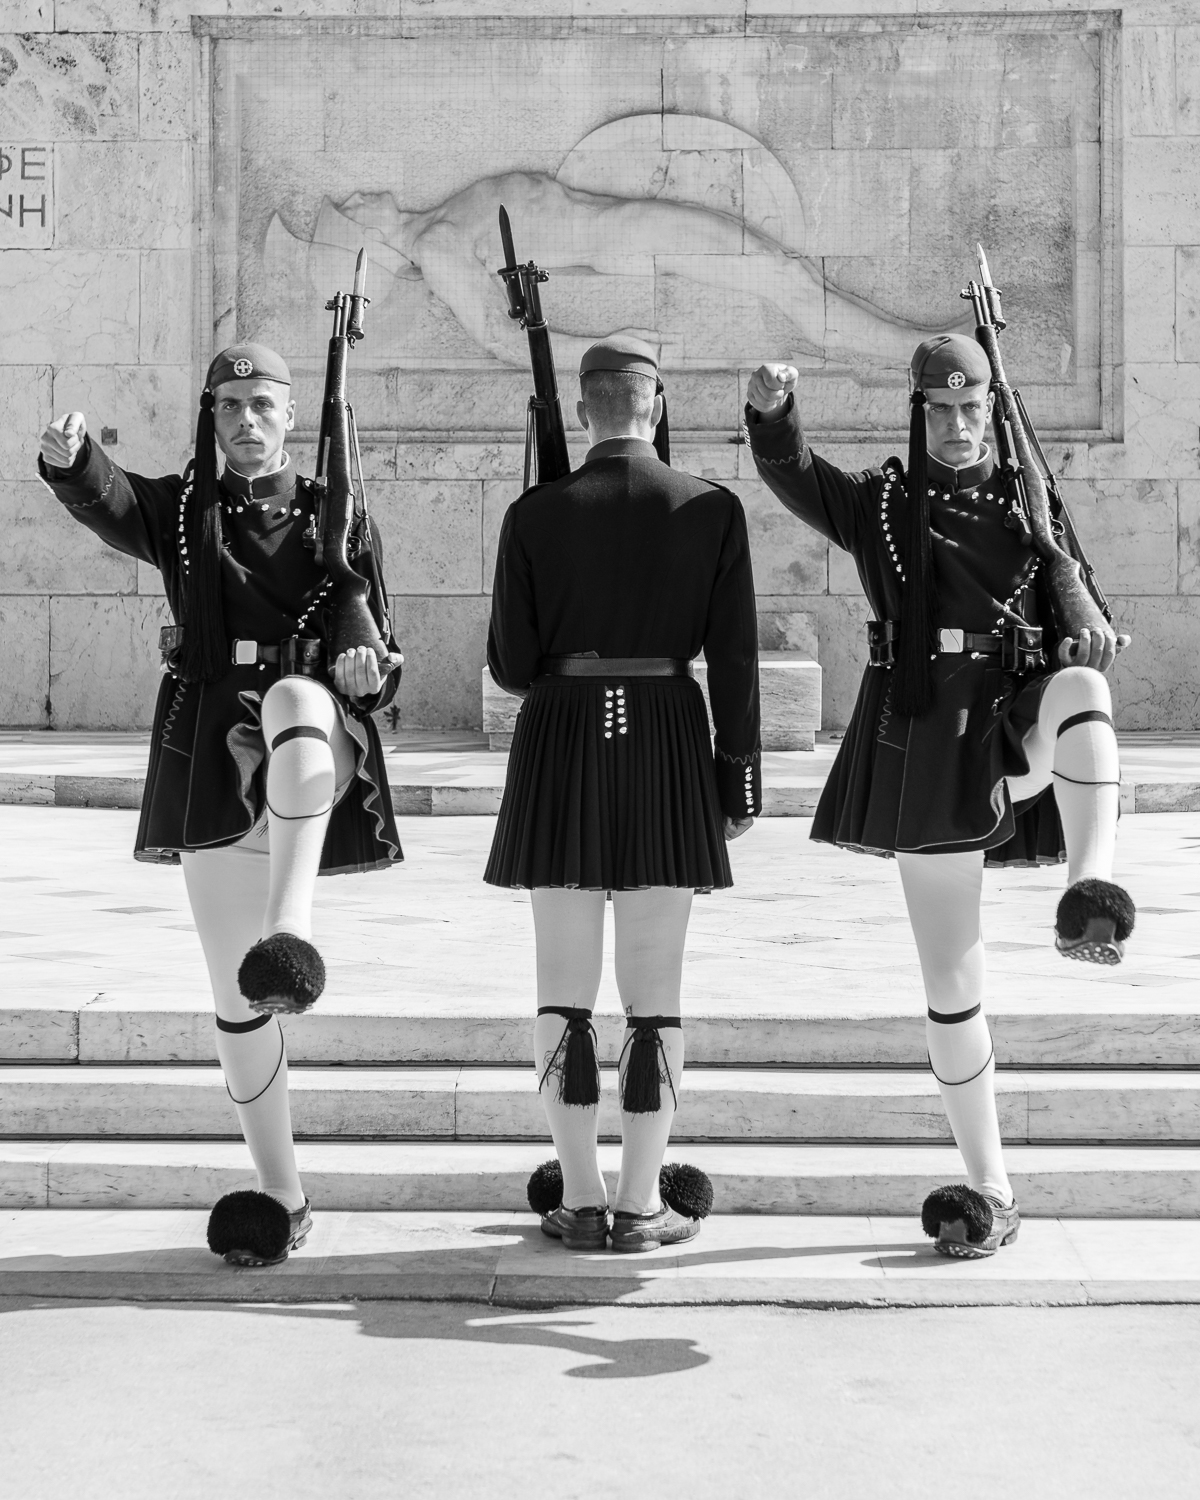 Greek Presidential Guard change guard in Athens, in black and white